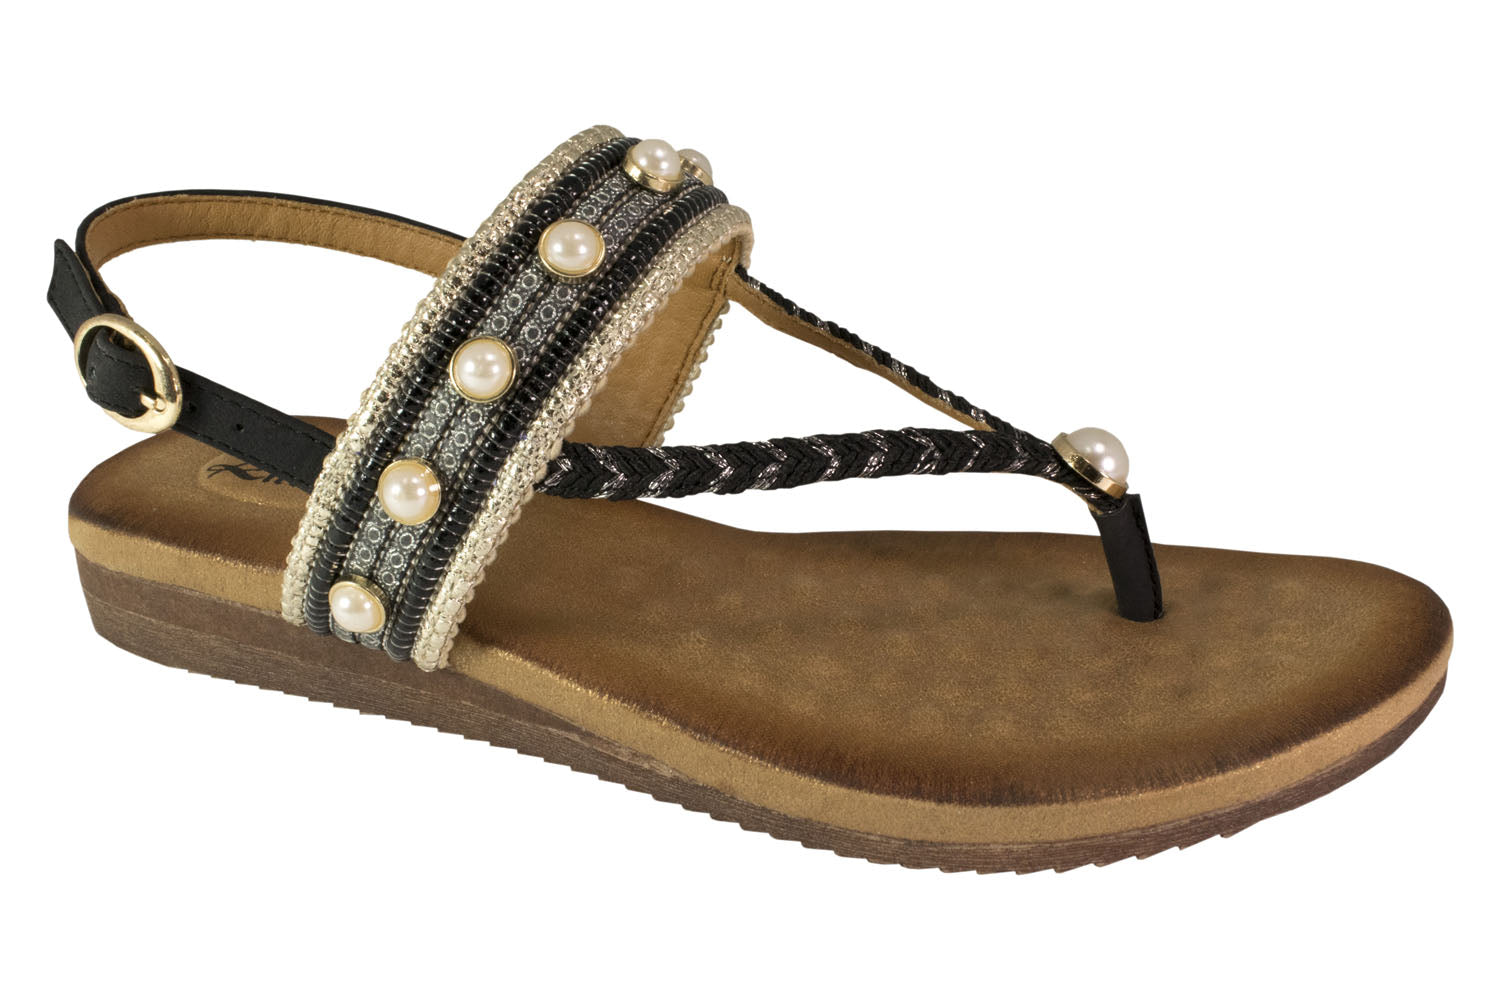 Kirra Beach Sandals - Tilly - Black - Sole Sister Shoes